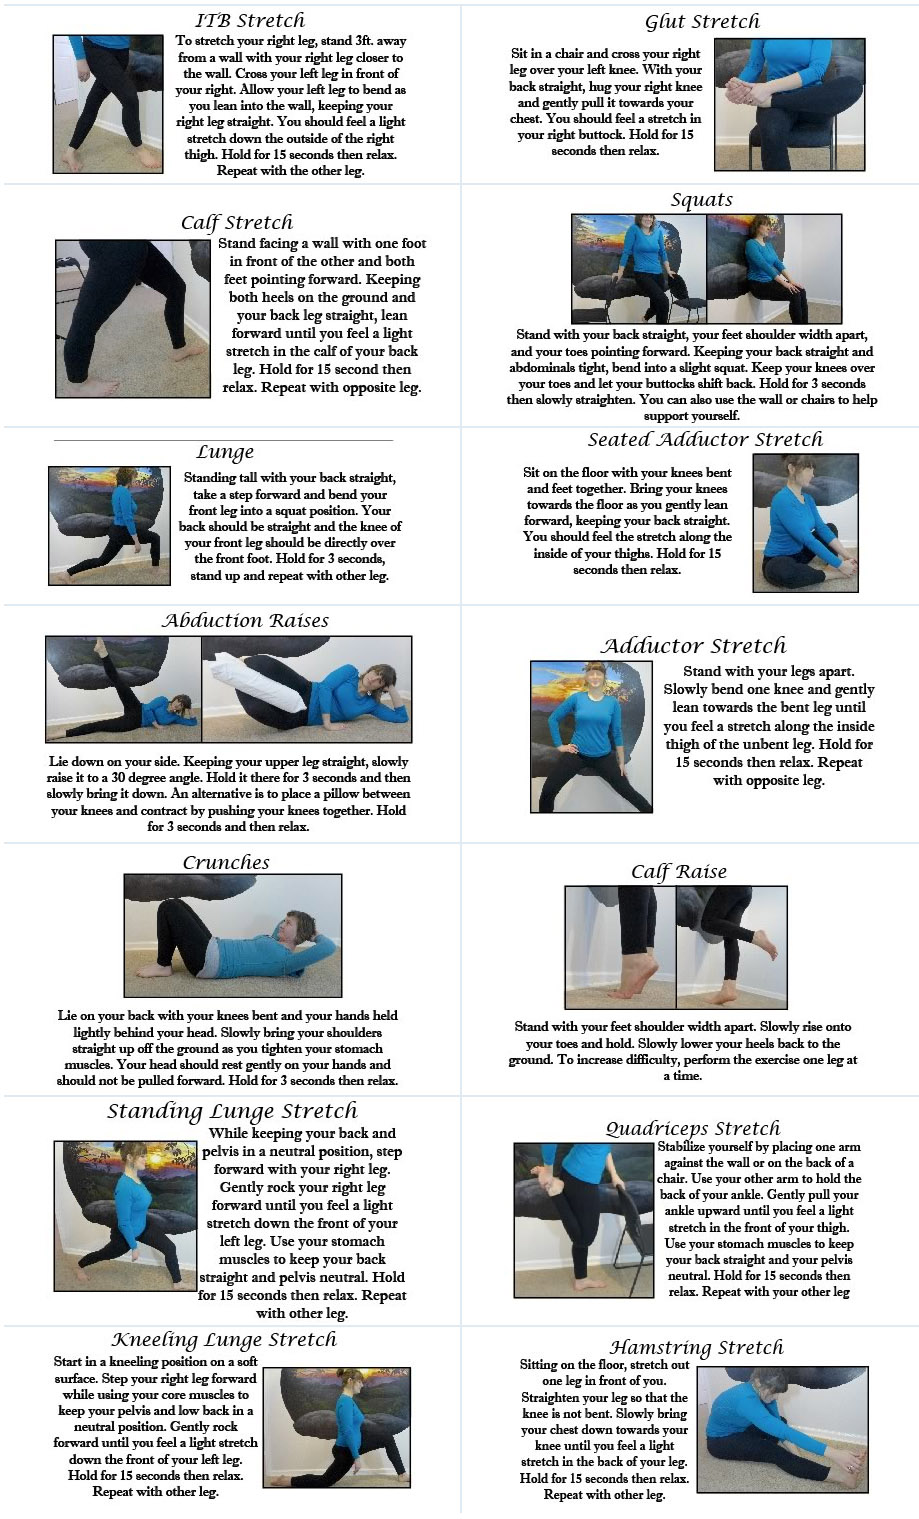 Hip & Knee Patient Stretch and Exercise Guide